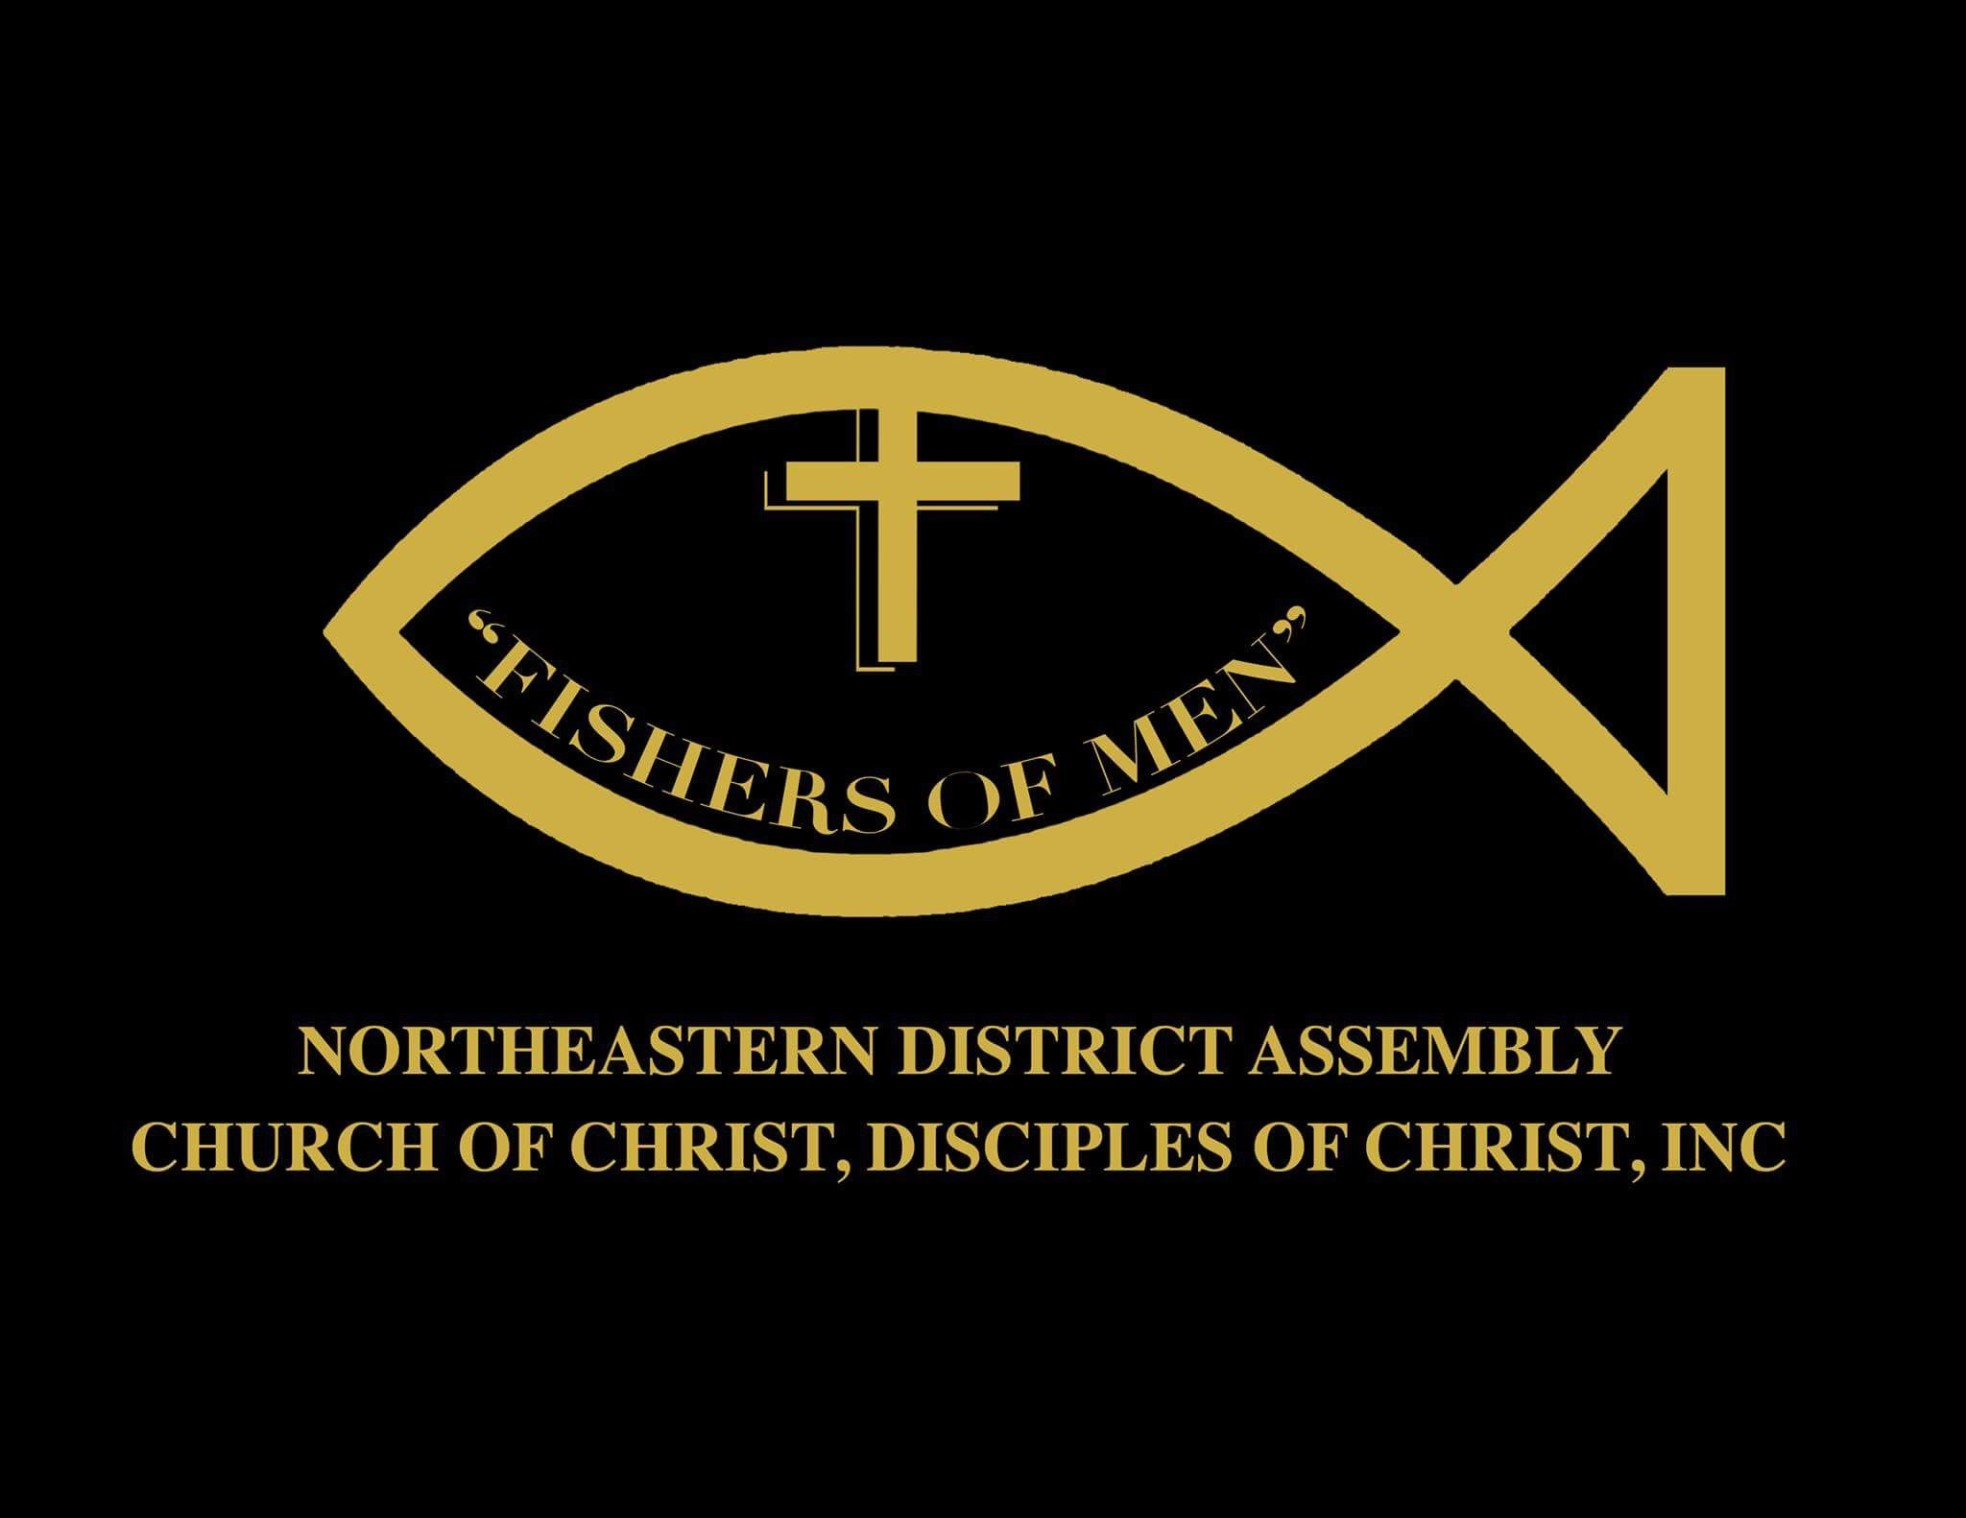 The northeastern district assembly church of christ disciples of the northeastern district assembly church of christ disciples of christ new generation church of christ disciples of christ buycottarizona Image collections